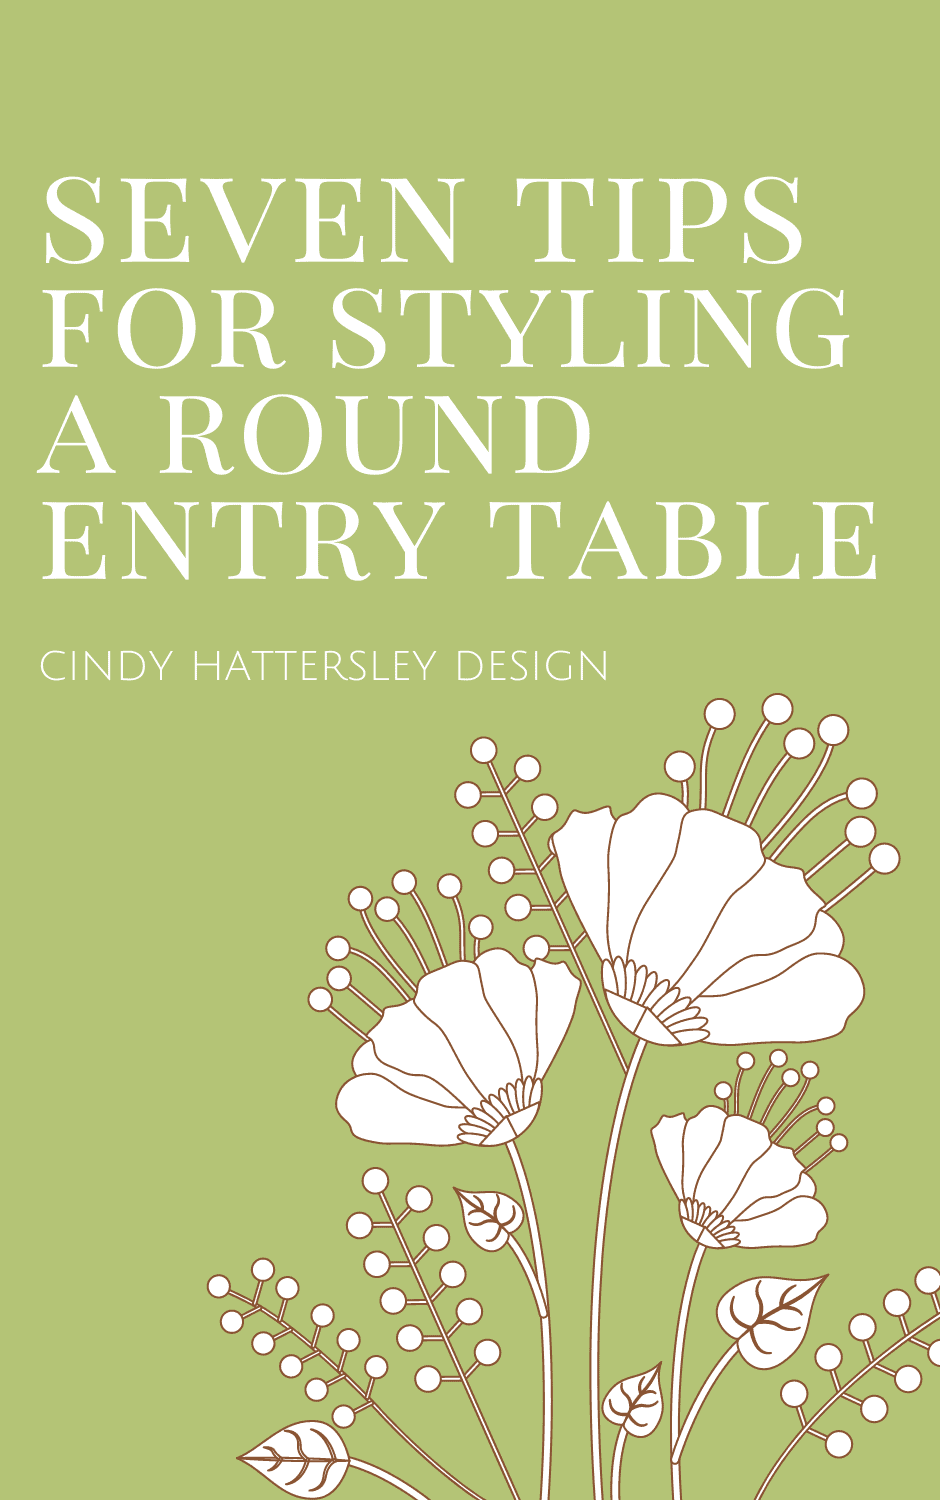 seven tips for styling a round entry table